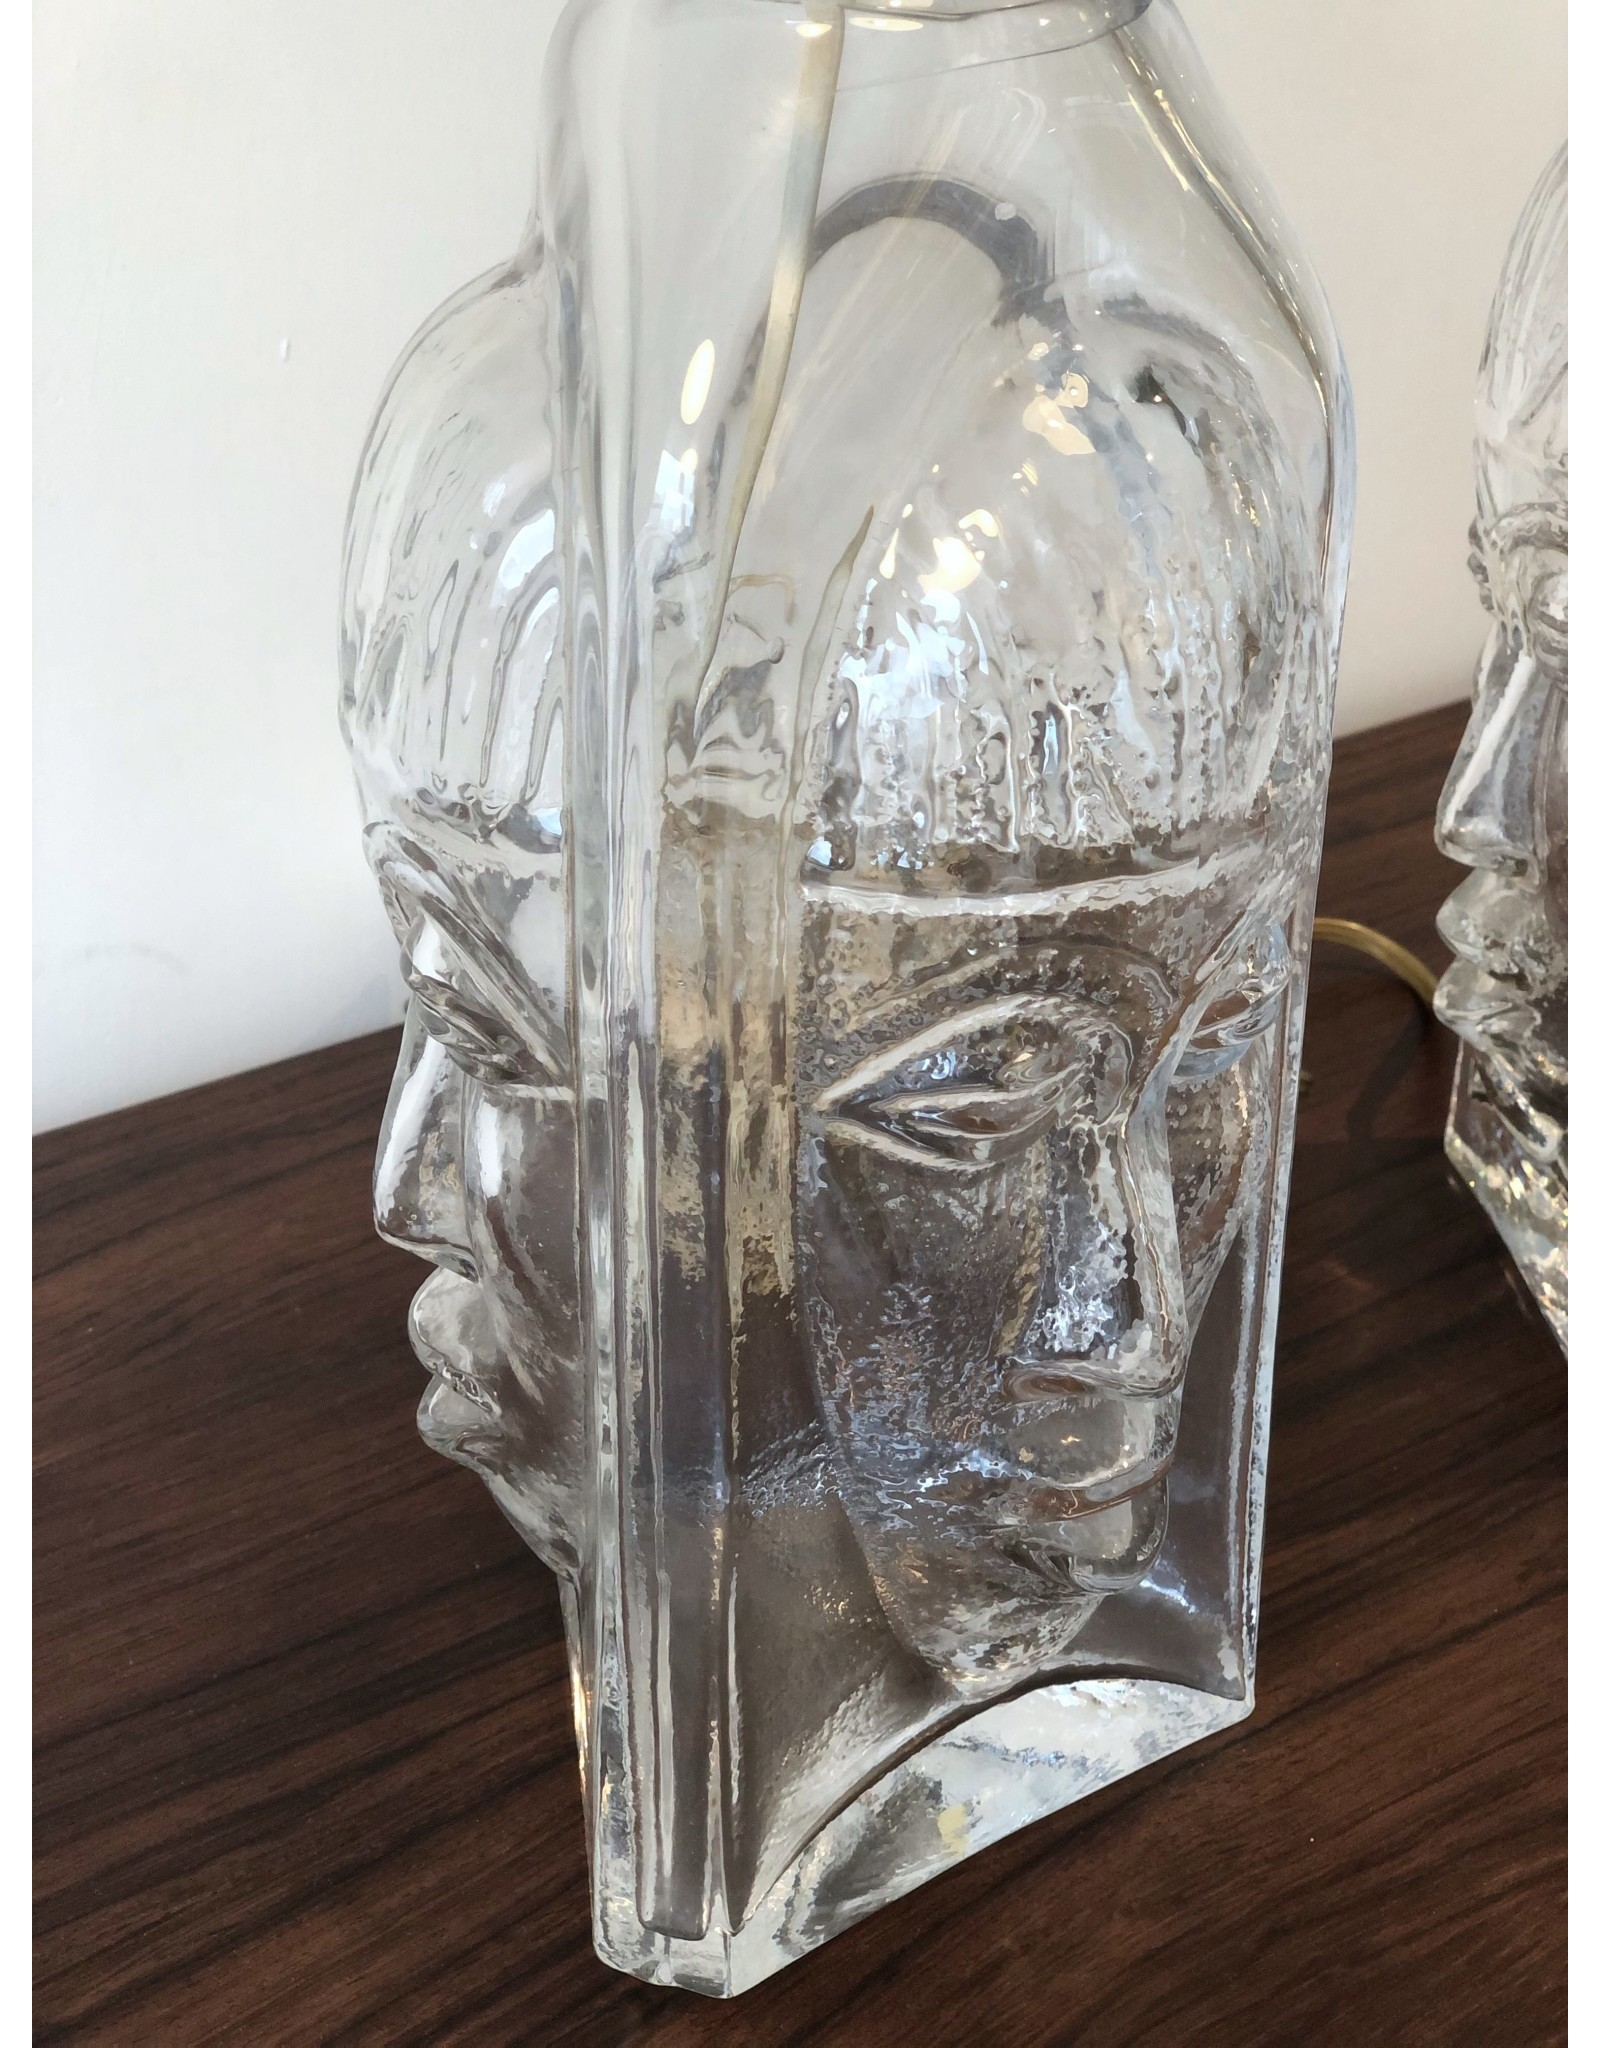 1960's PAIR OF STUDIO CLEAR GLASS TABLE LAMPS WITH FACES